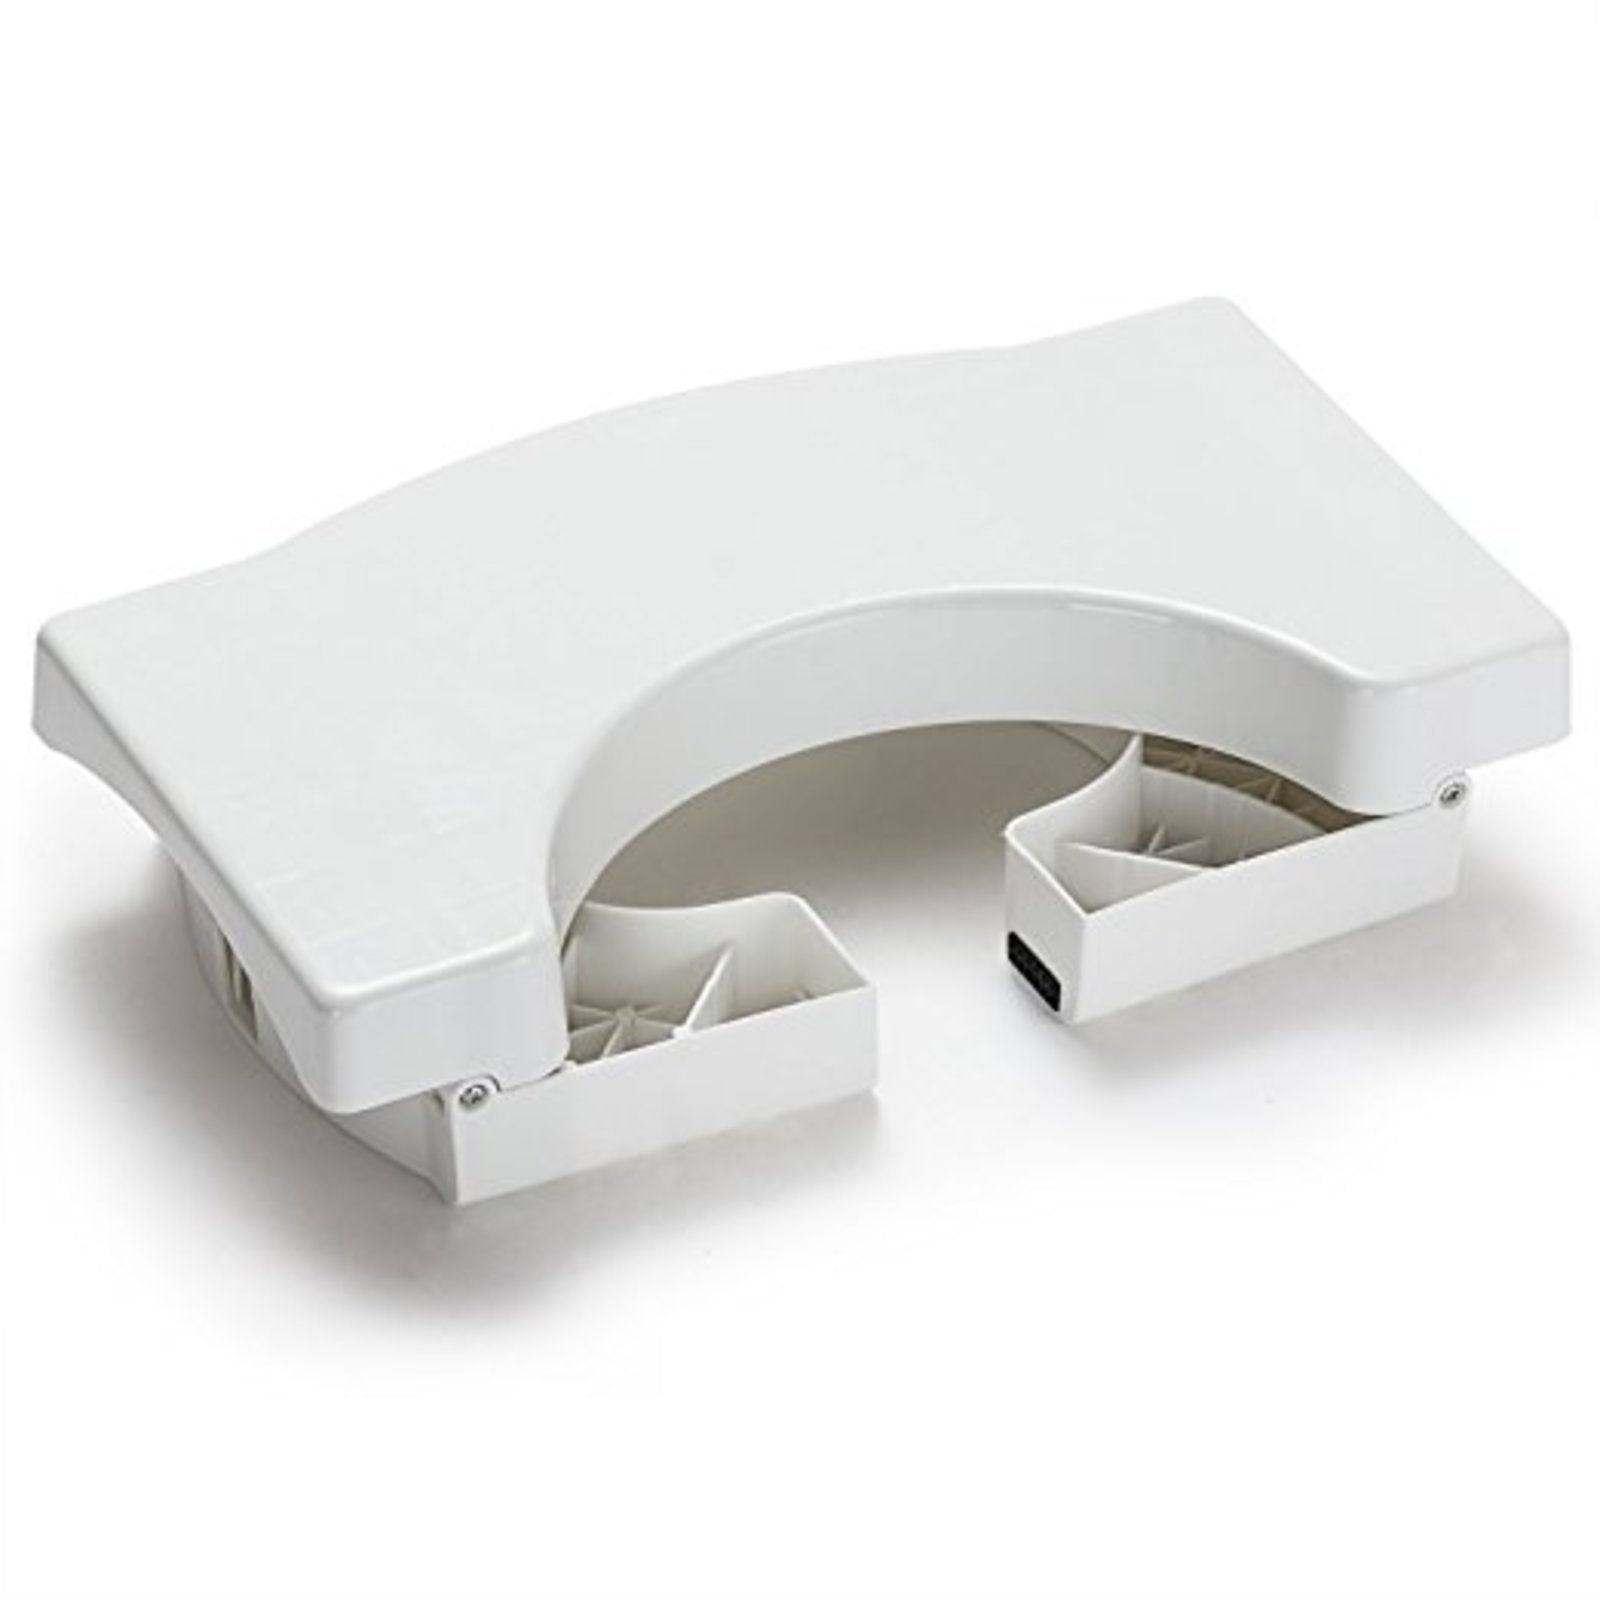 D&A HEALTH - SQUAT POT FOLDABLE AND PORTABLE